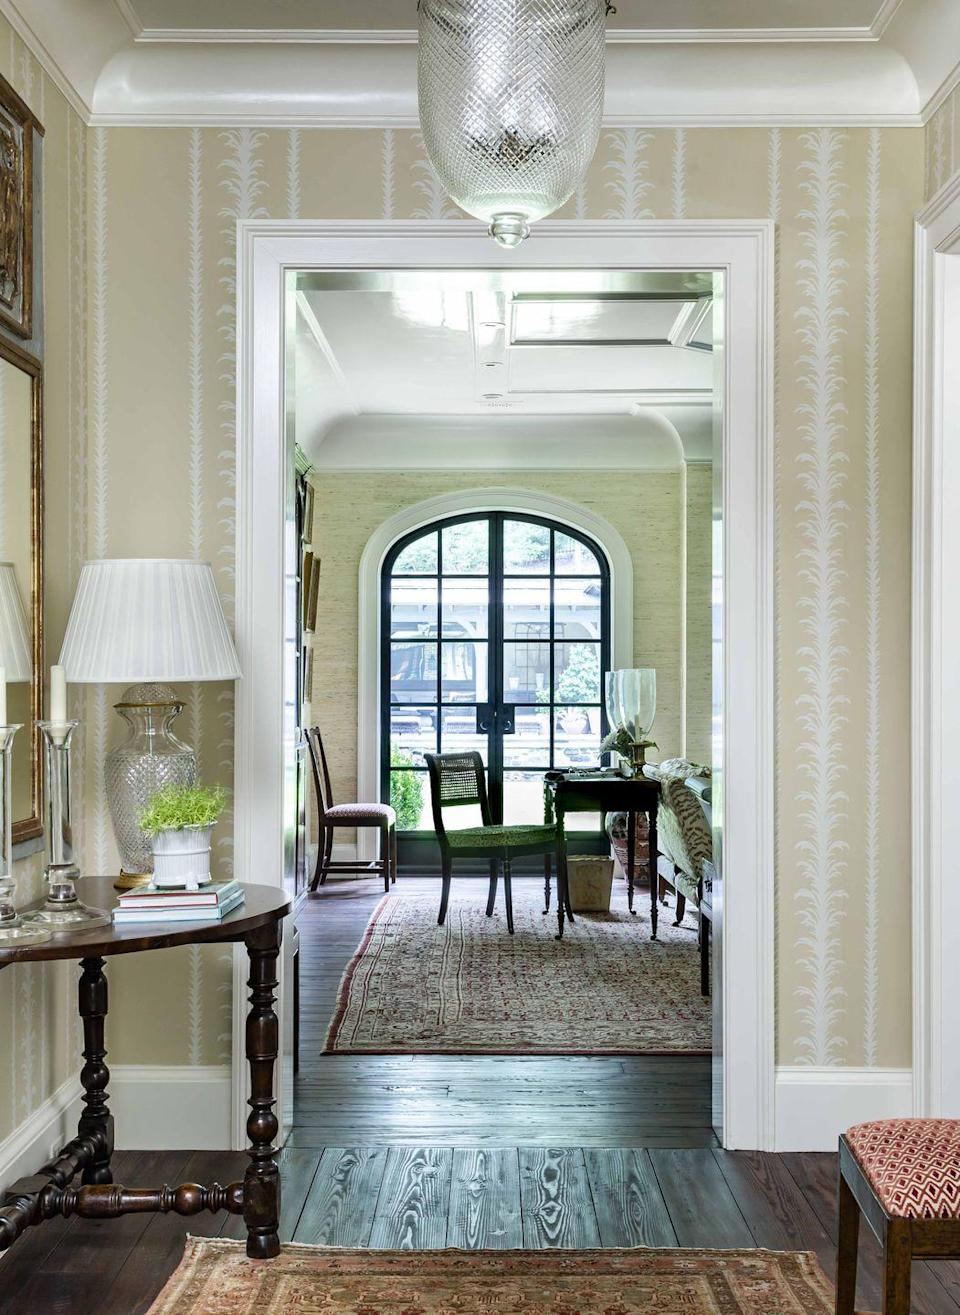 <p>Patterns and architecture go hand in hand. Here, an enfilade space is accented with a columnar wallpaper (George Spencer Designs) that has a ground color that's repeated in the arrowroot wallcovering seen in the room beyond. </p><p>Taking tones and hues in the same family from room to room carries the eye's gaze, as does an architectural enfilade. Trim painted in a satin finish adds a luster to the millwork.</p>